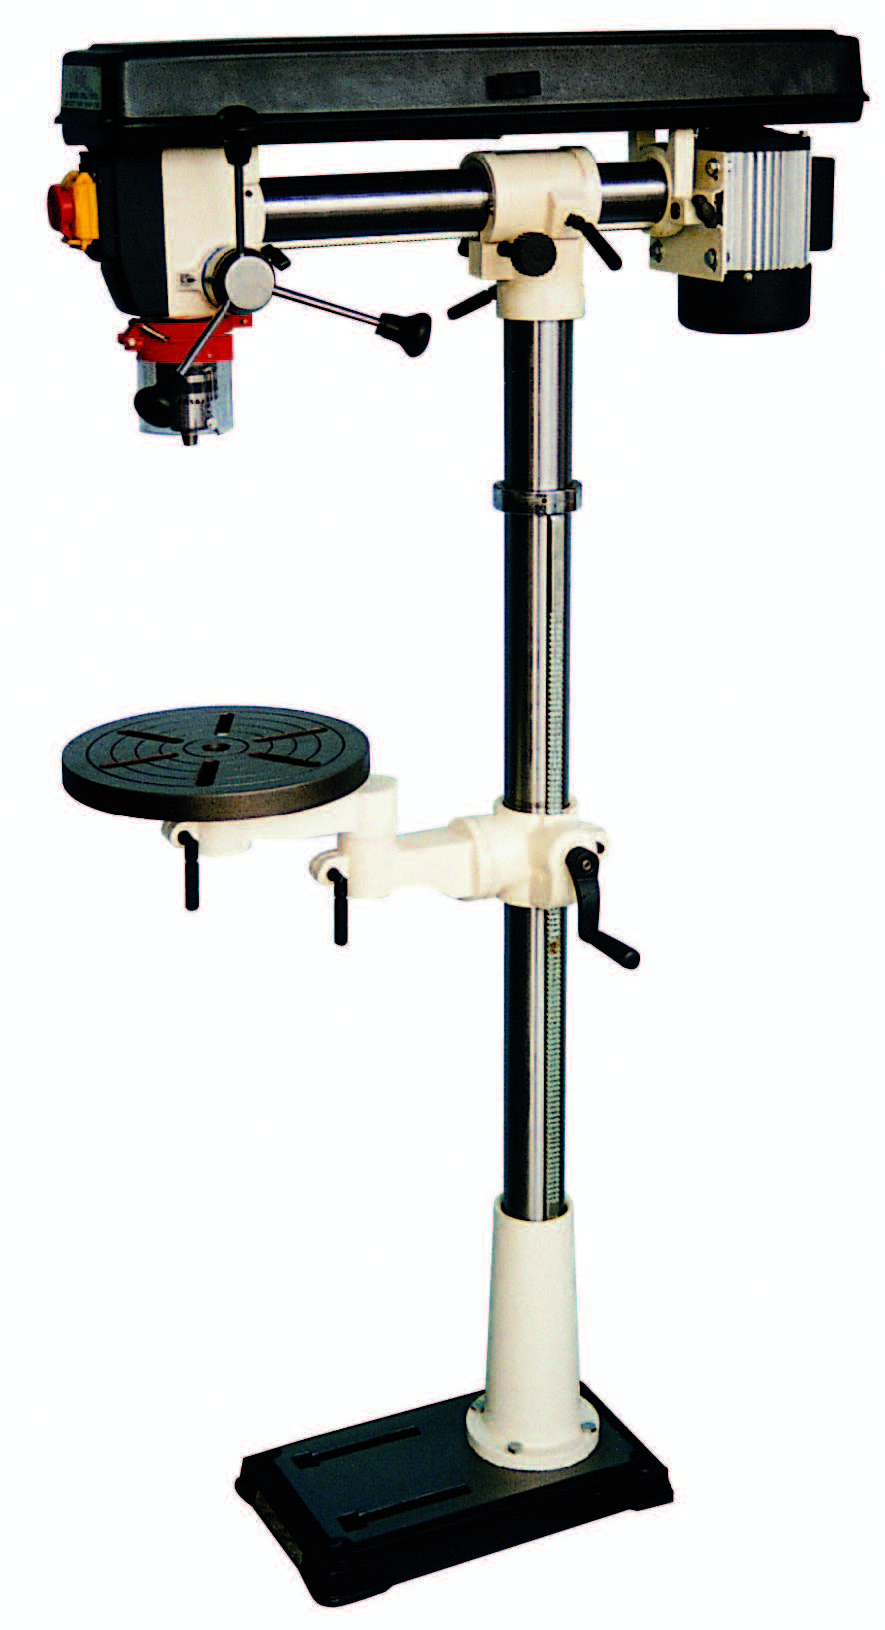 Taladros De Columna Madera on 1 8 hp electric motor